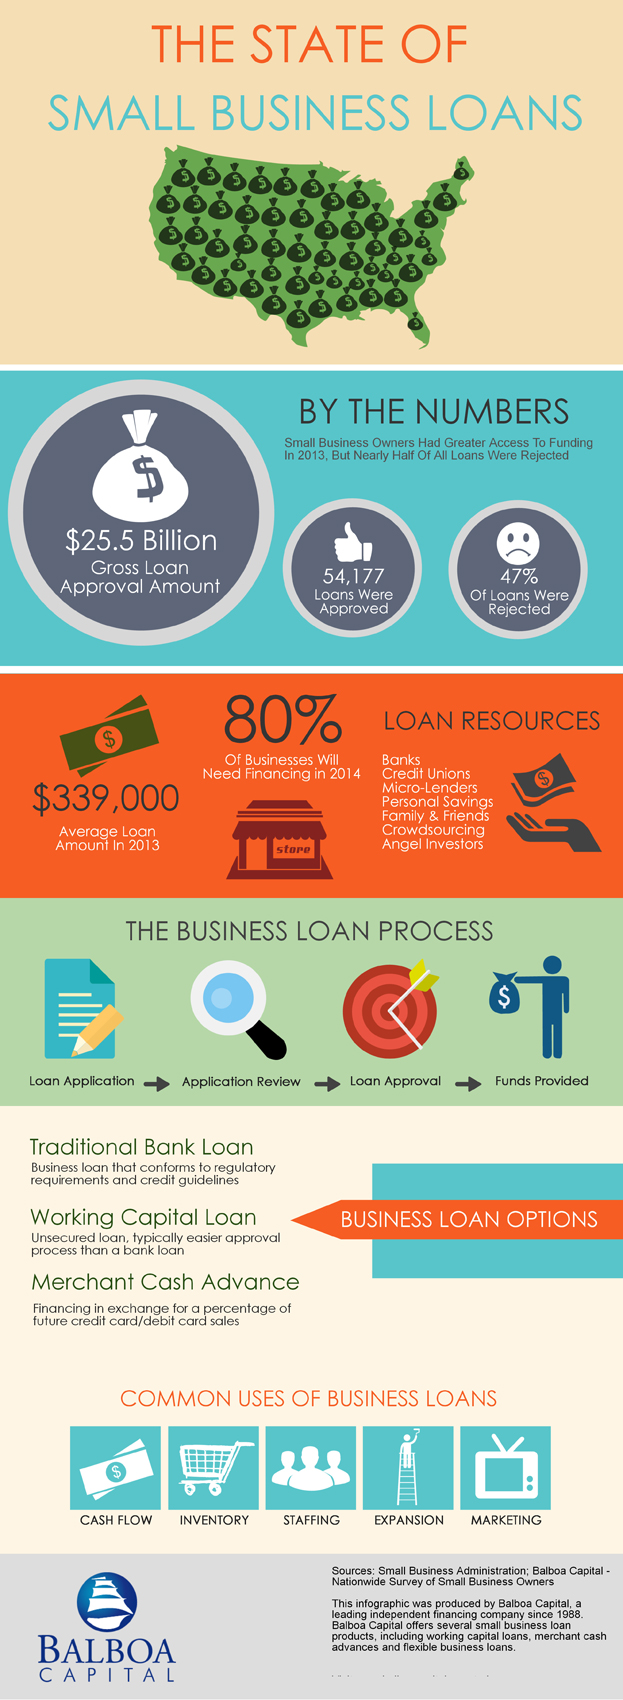 Working Capital Loans up to $500,000 | National Funding